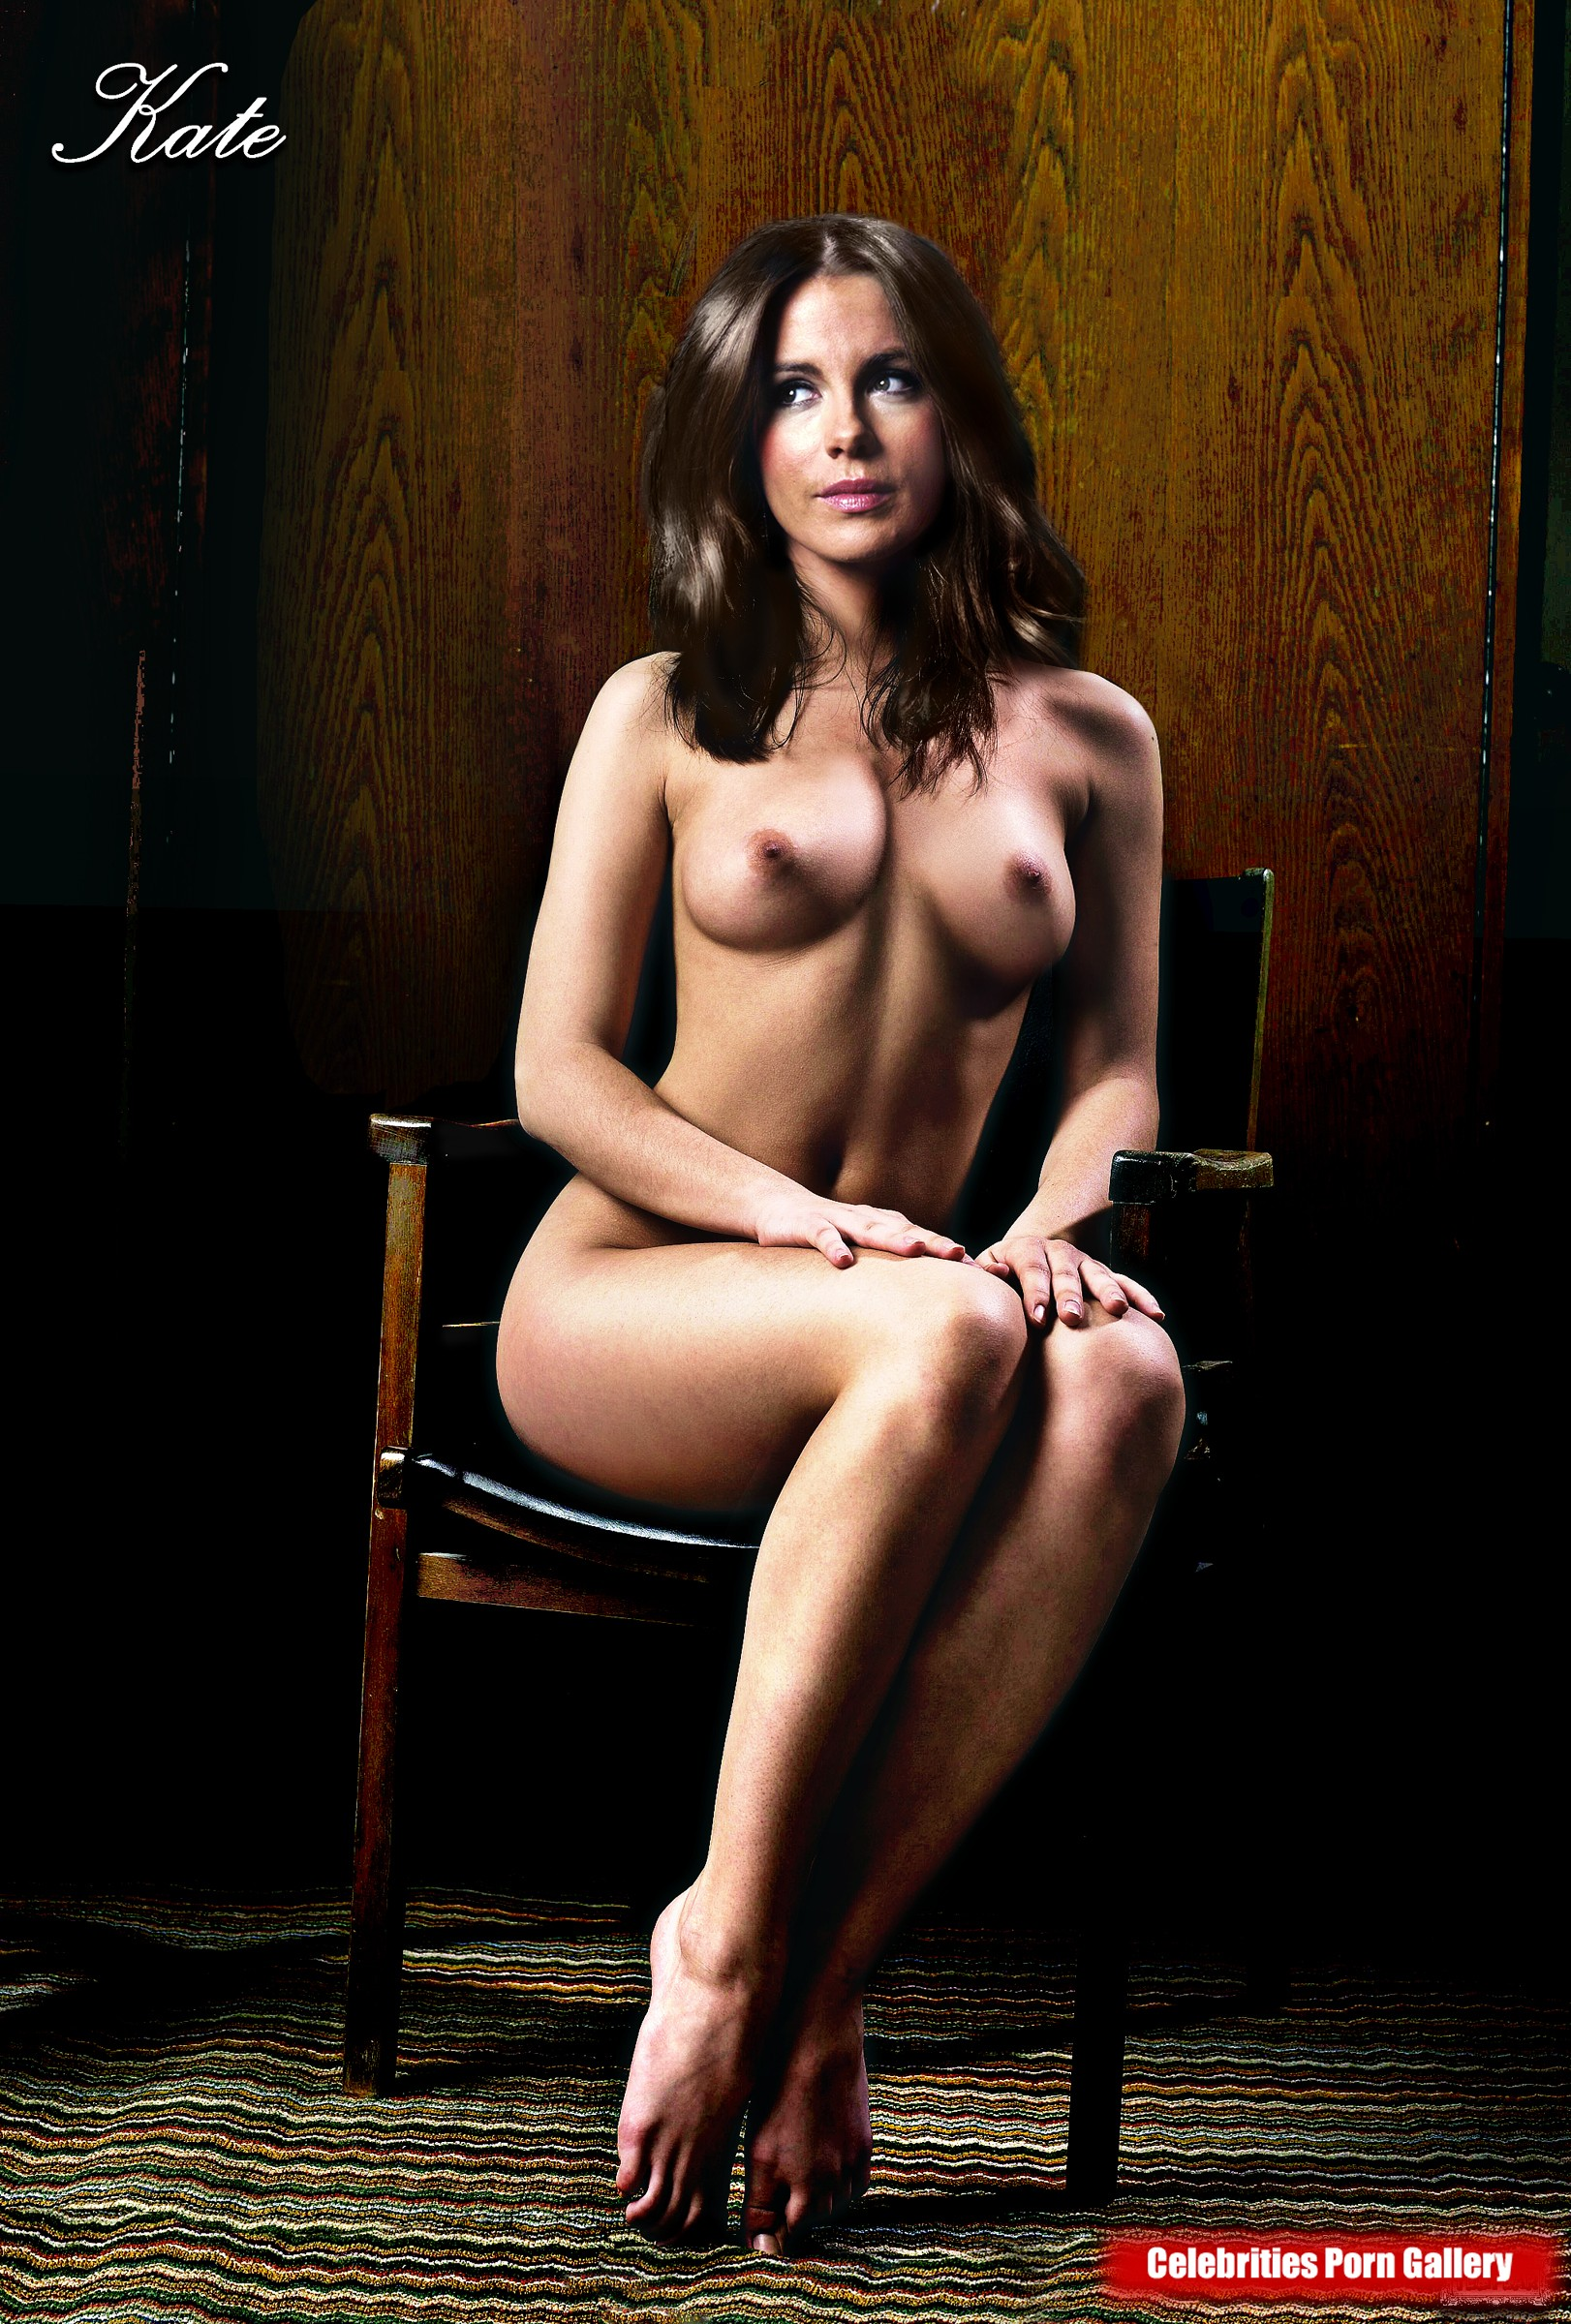 Kate beckensale nude pics and wallpapers for  erotic scene